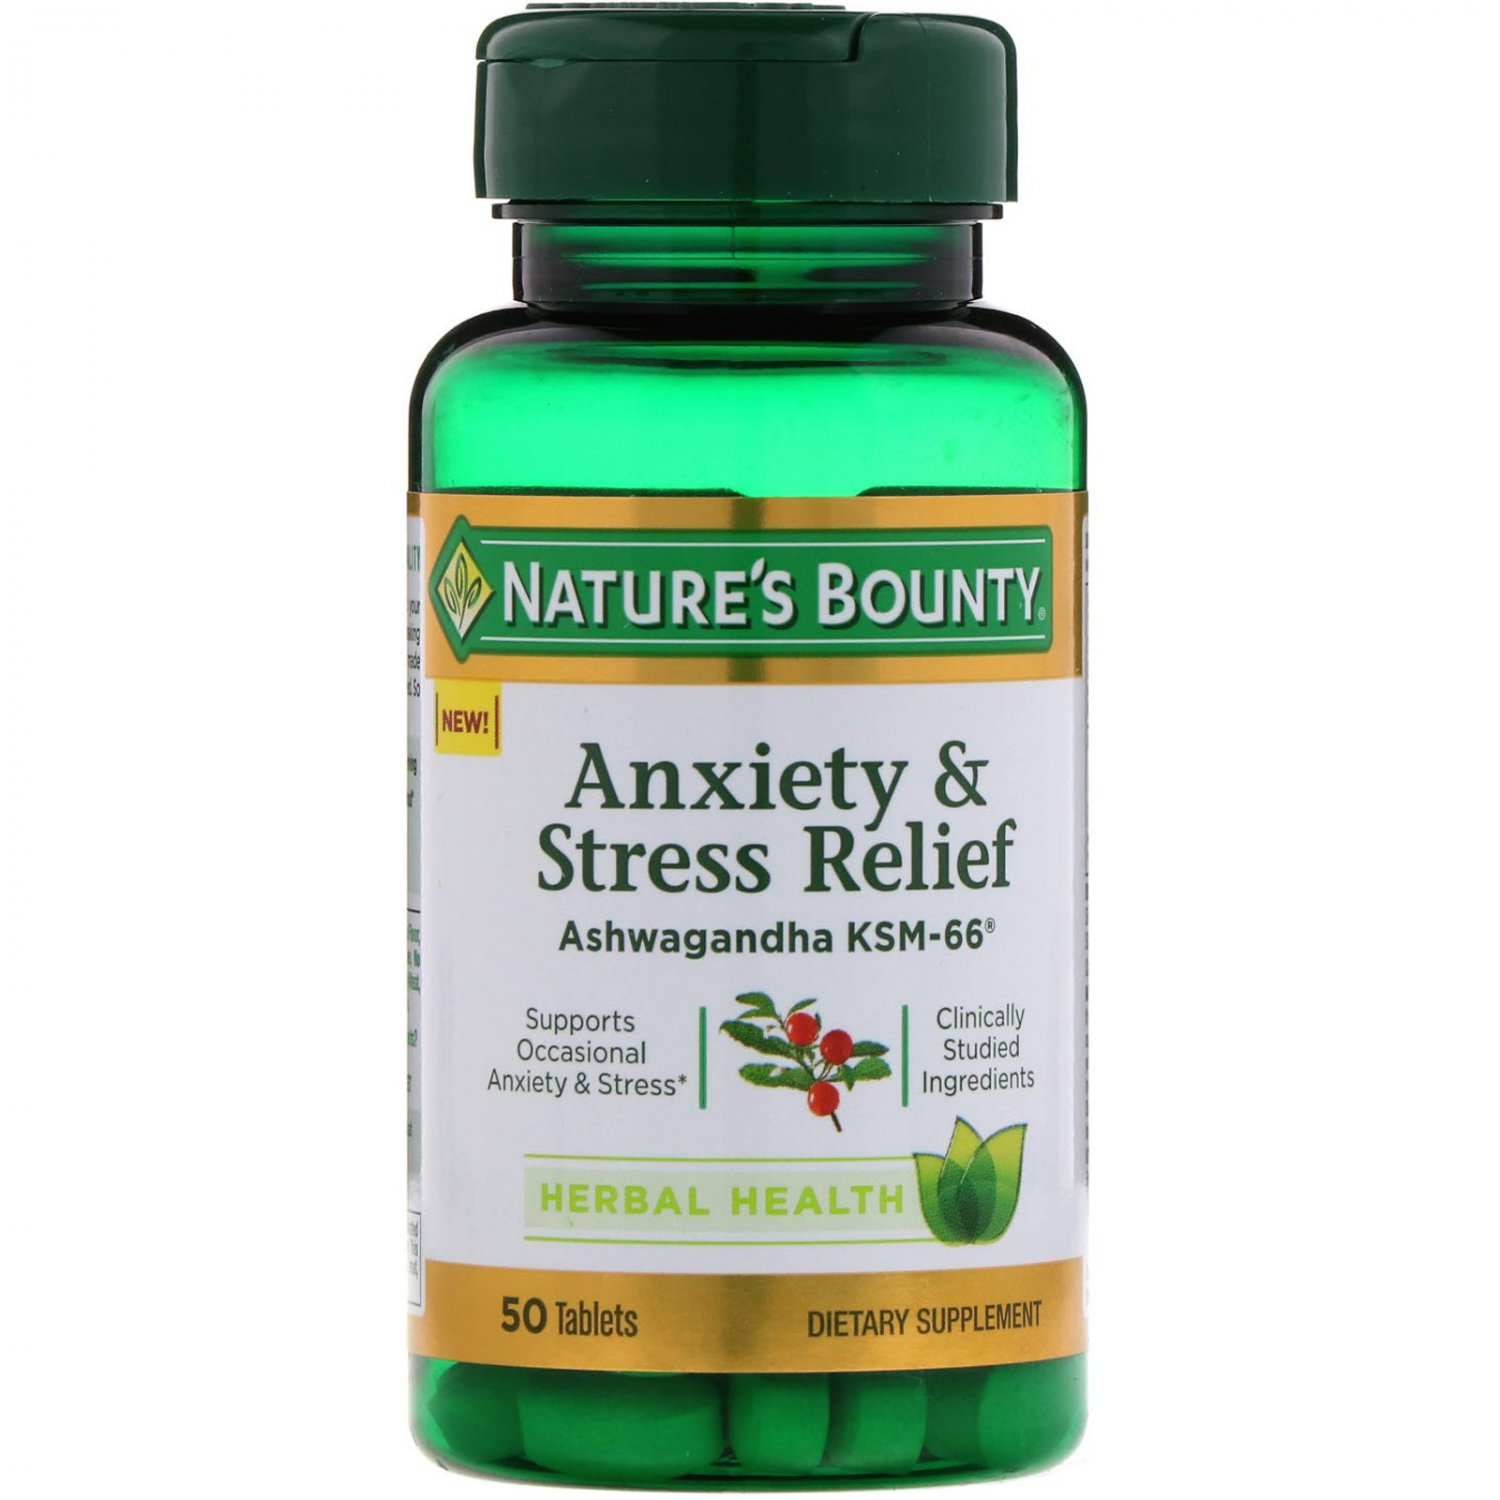 Nature's Bounty, Anxiety & Stress Relief, Ashwagandha KSM-66, 50 Tablets